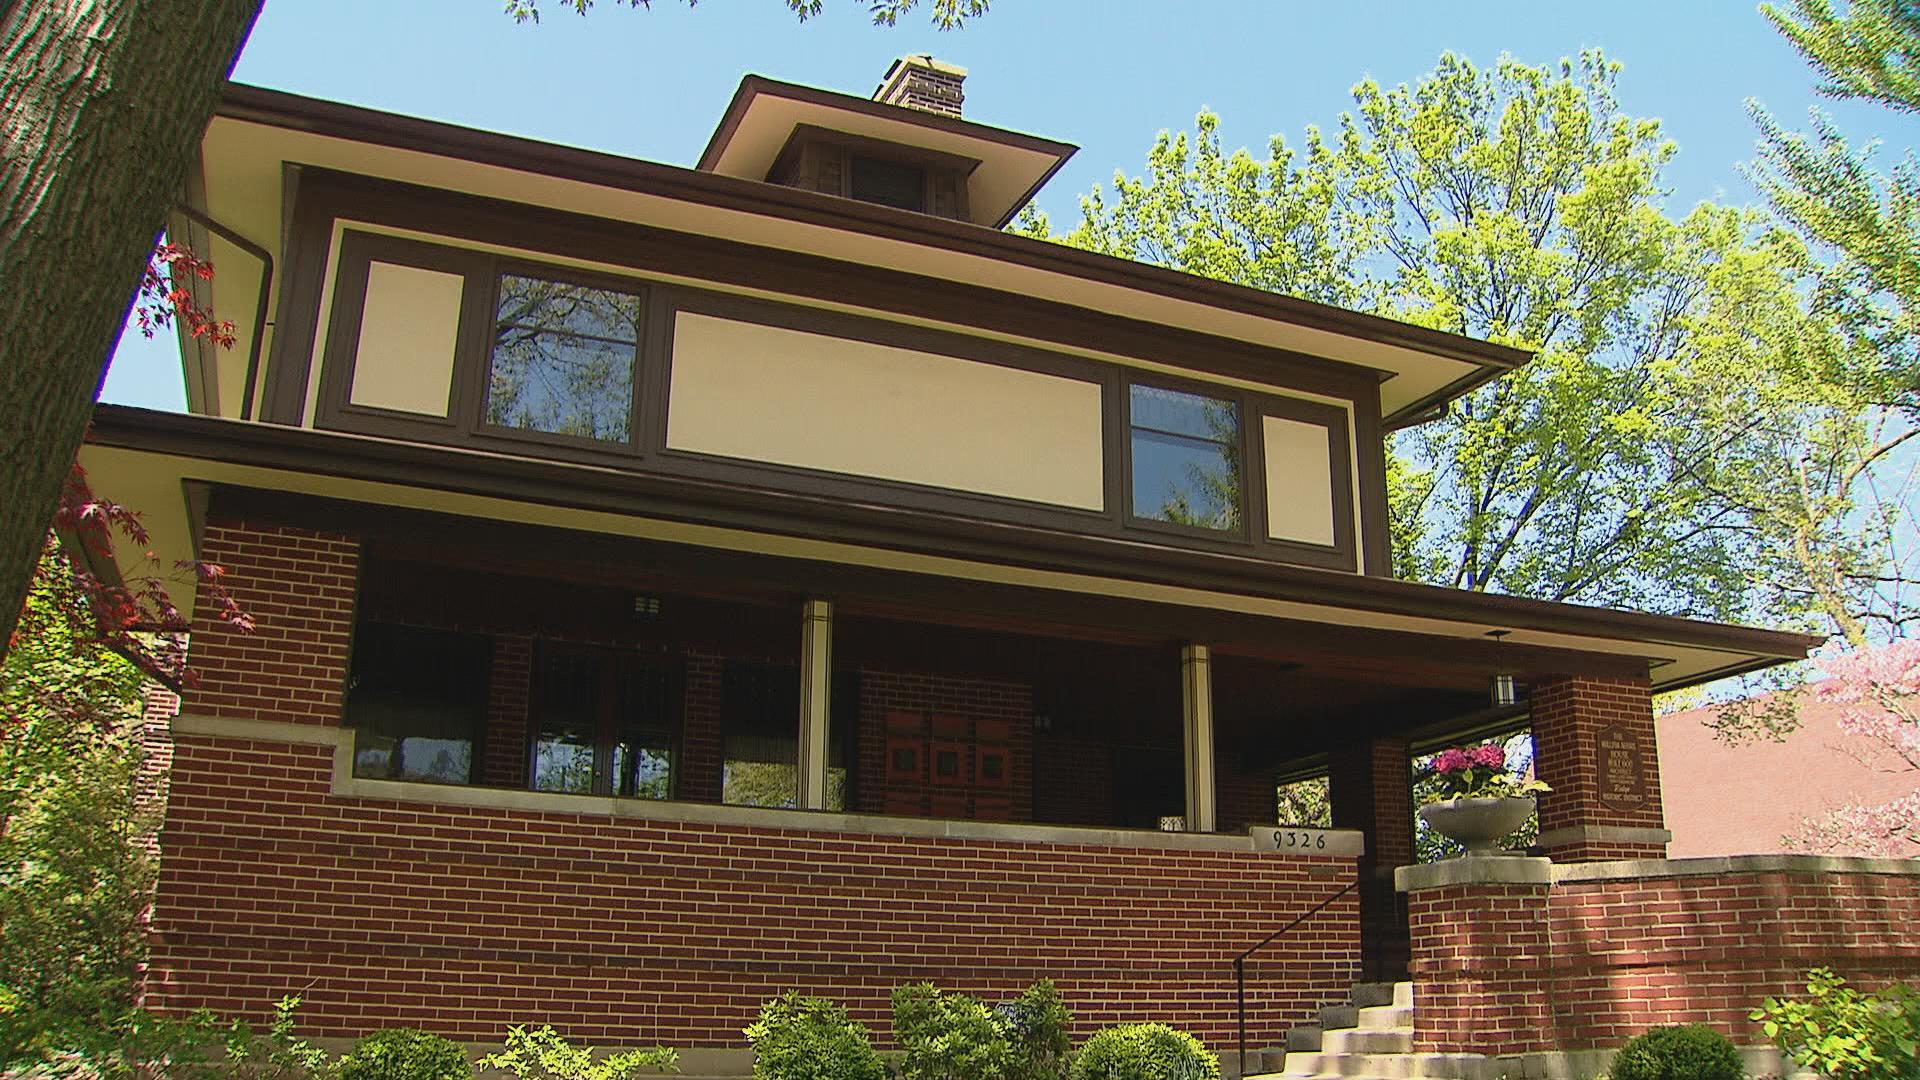 The William Adams House is featured on this year's tour. (Chicago Tonight)